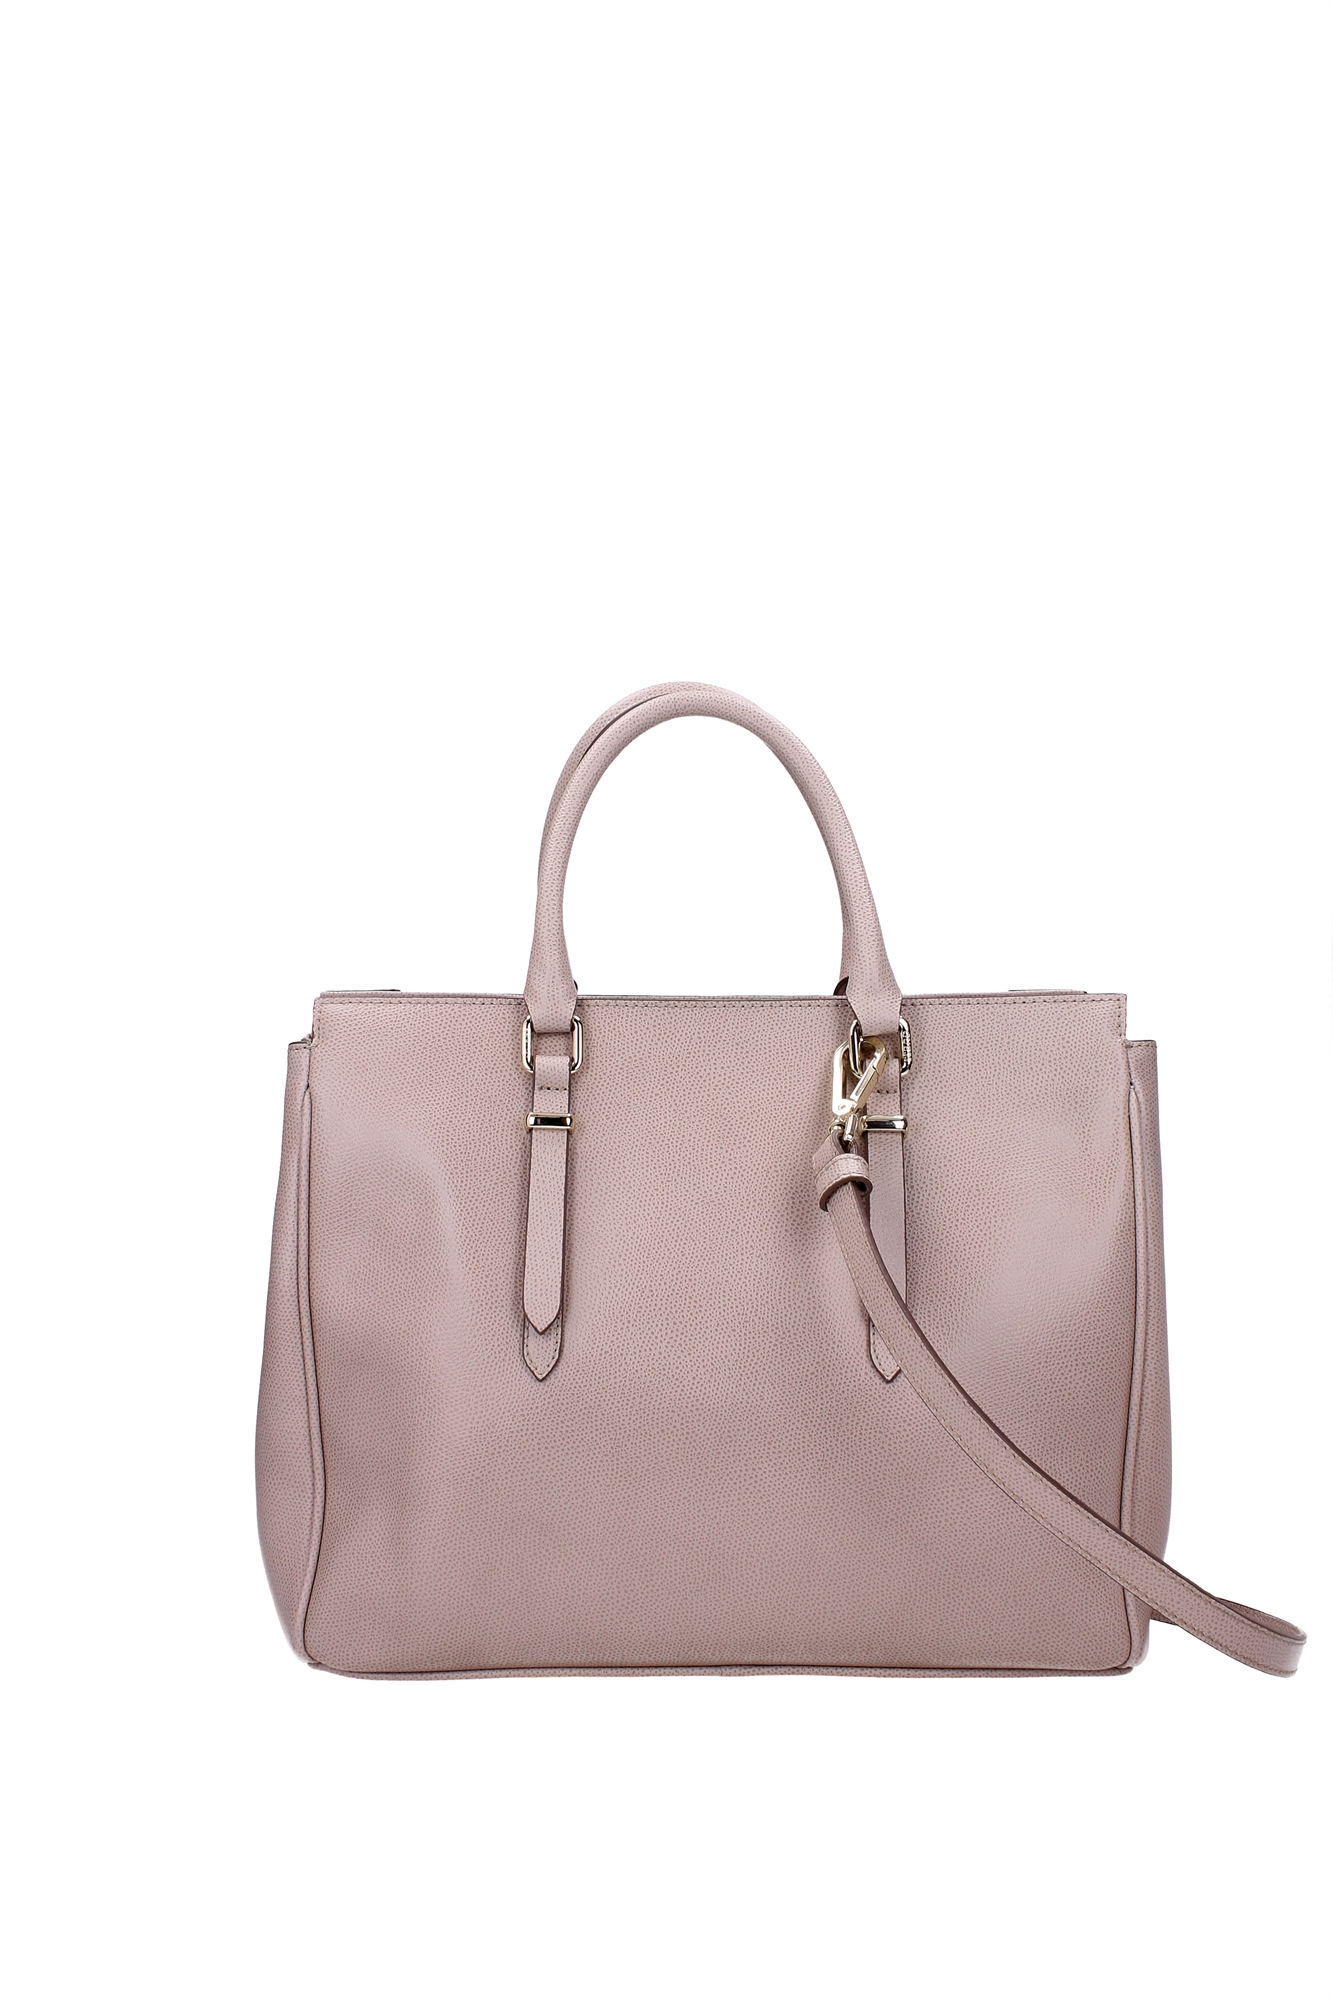 Creative The Womens Collection Offers  Collection Of Contemporary Apparel, Denim, Handbags, Watches, Footwear And Other Related Co